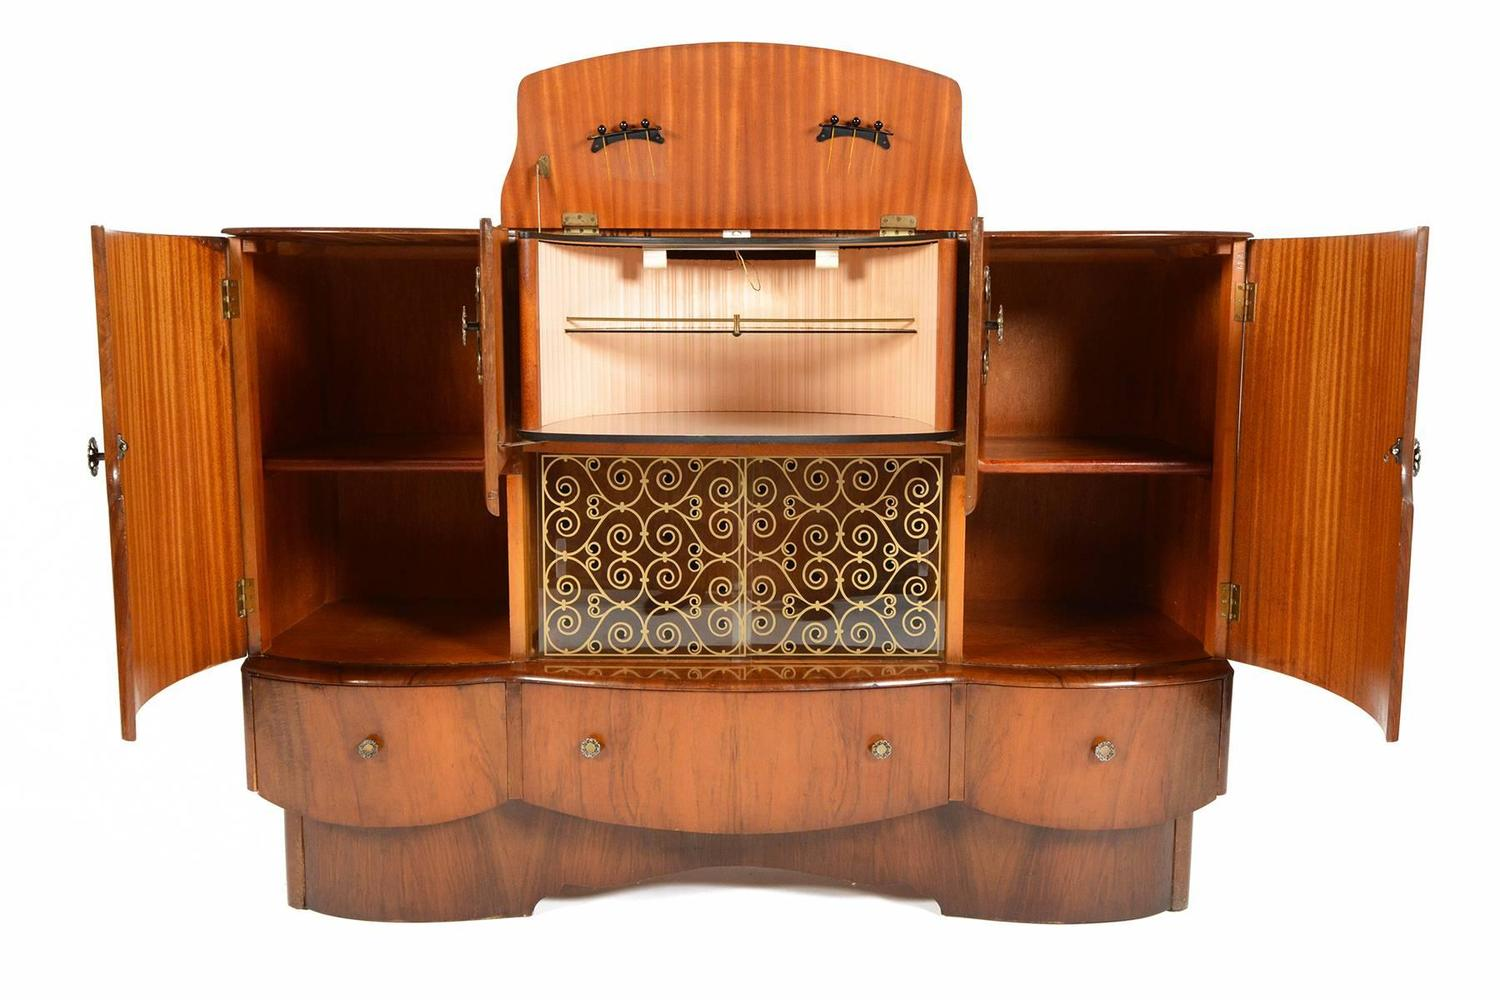 Beautility Art Deco Bar In Elm At 1stdibs